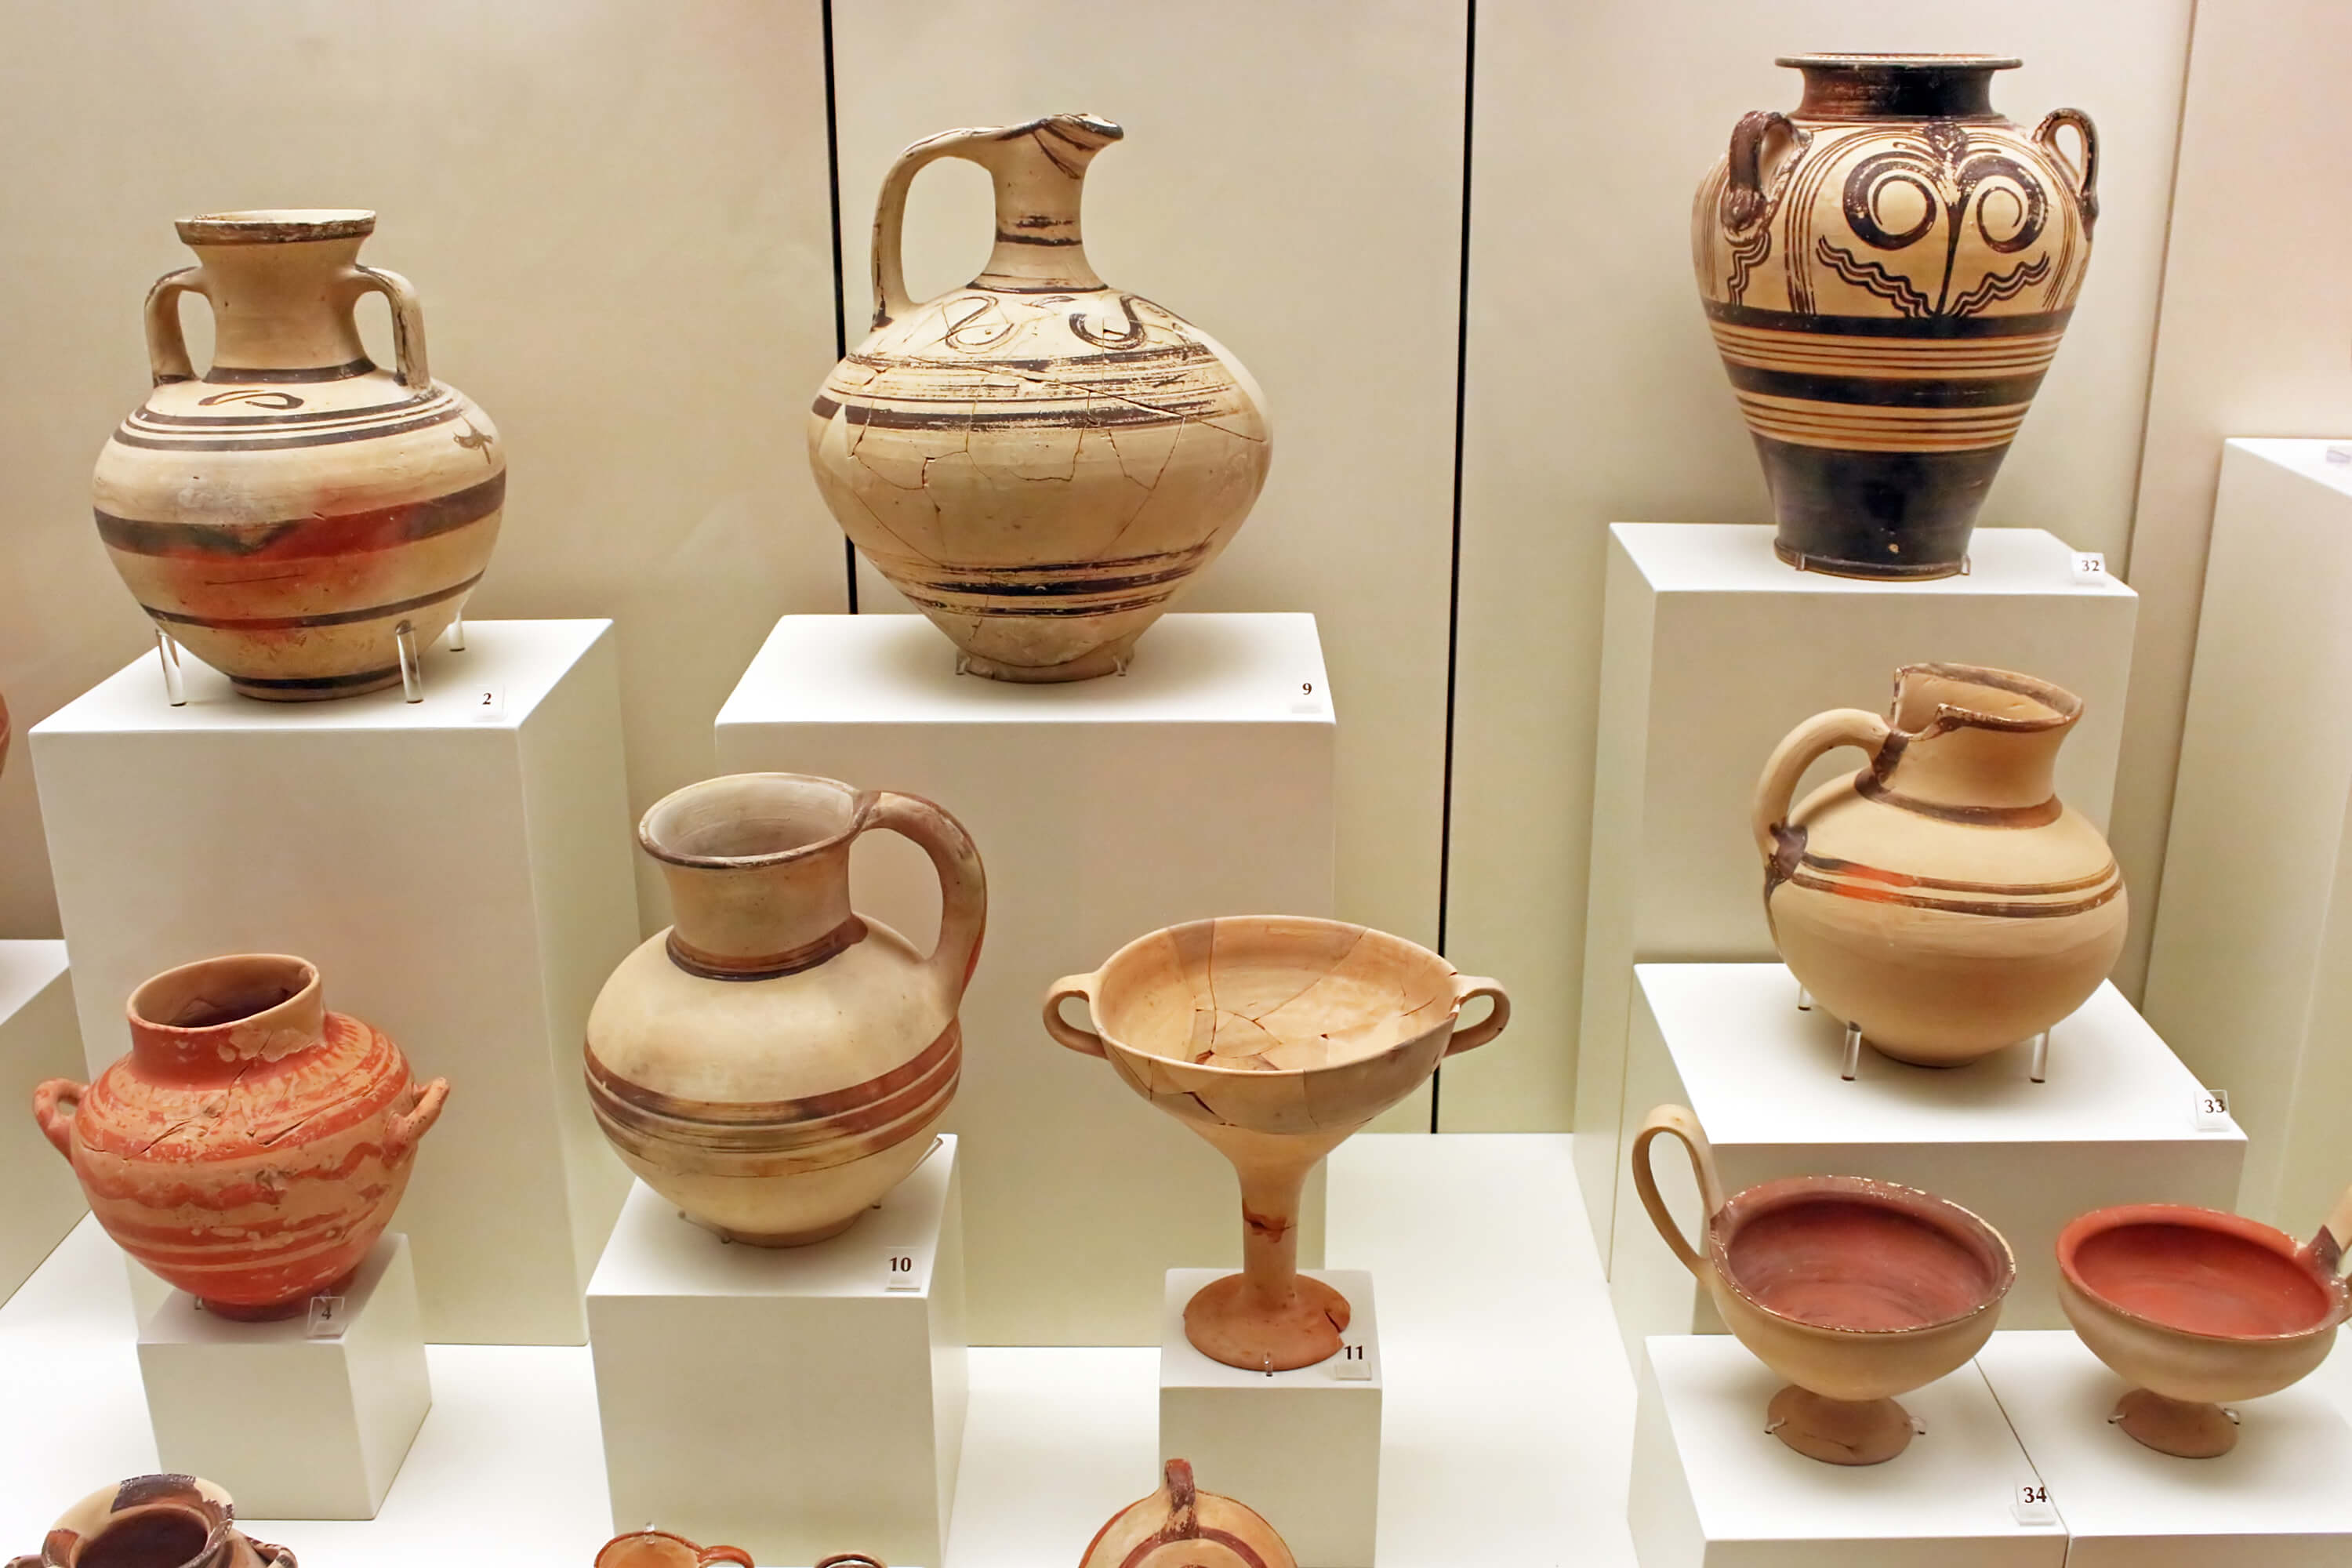 various Greek amphorae on display. This type of pottery is common at the Indian landmark, Arikamedu.